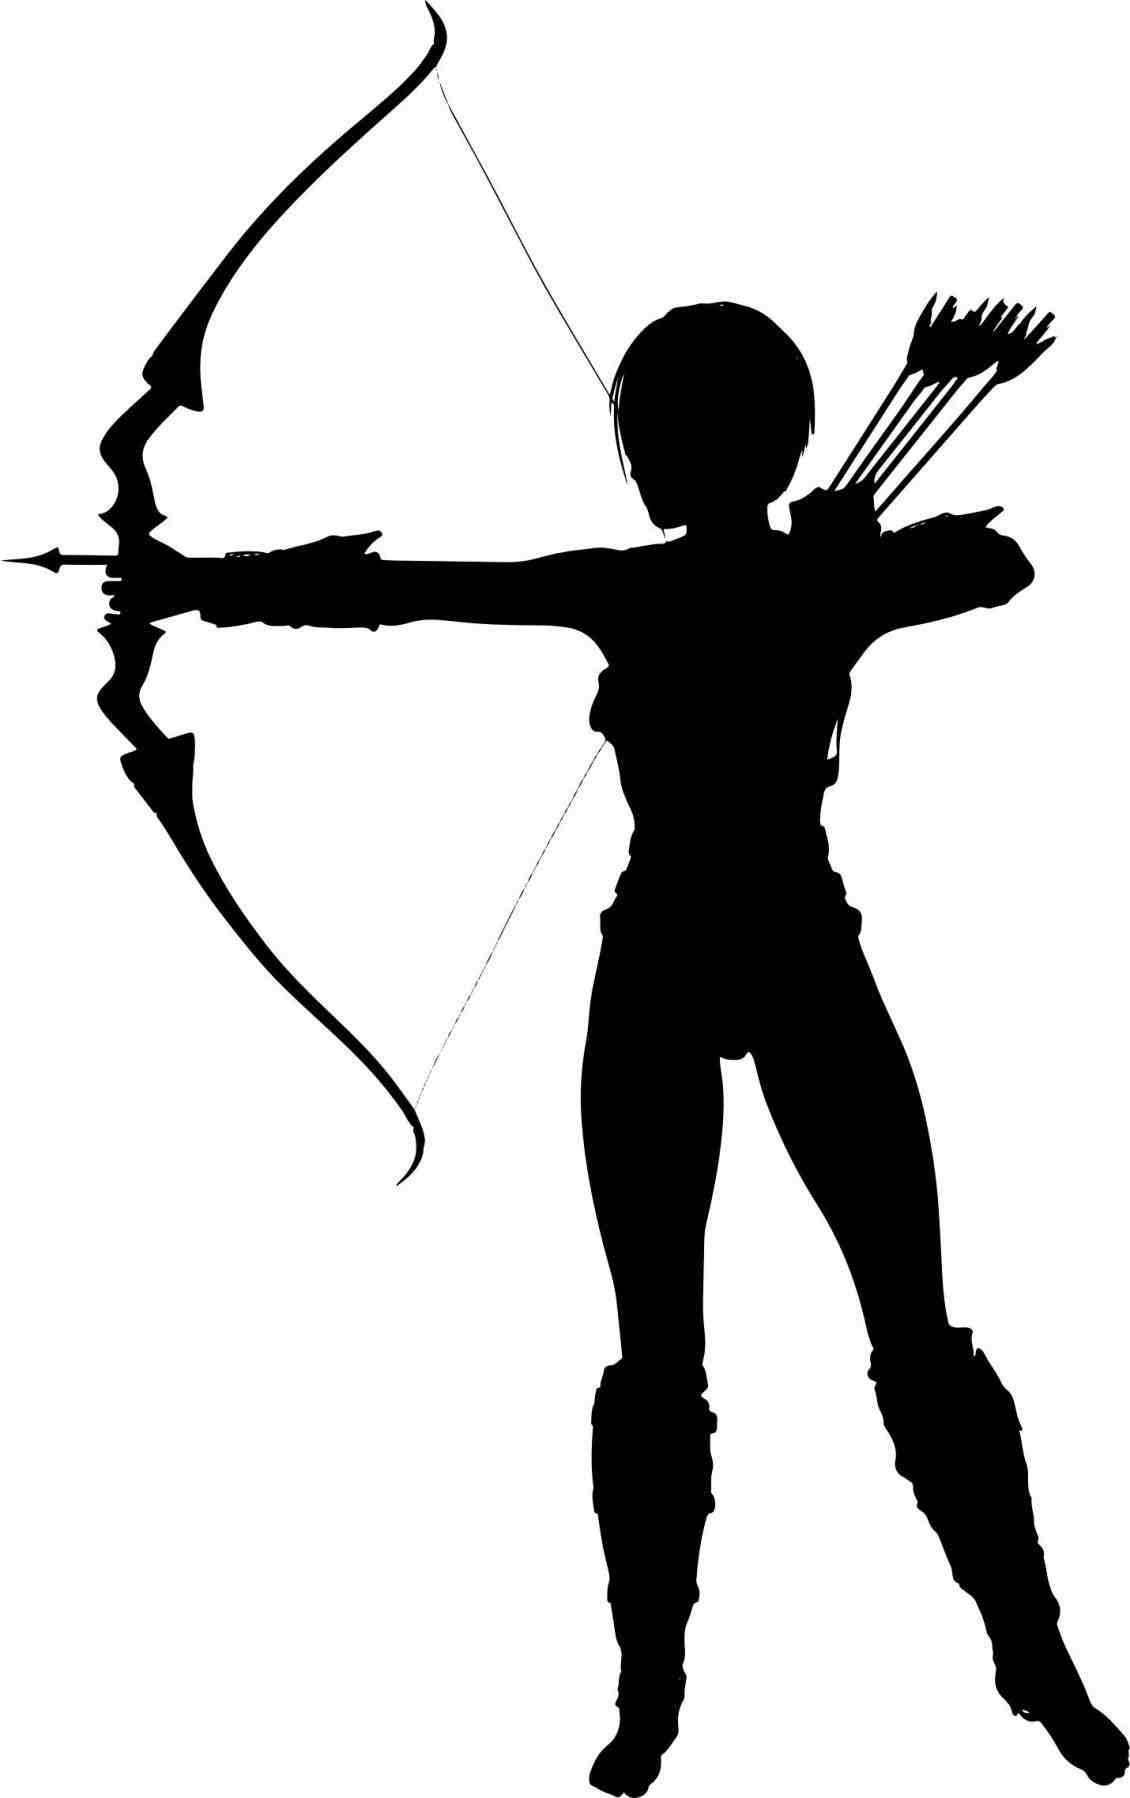 bow and arrow silhouette png.